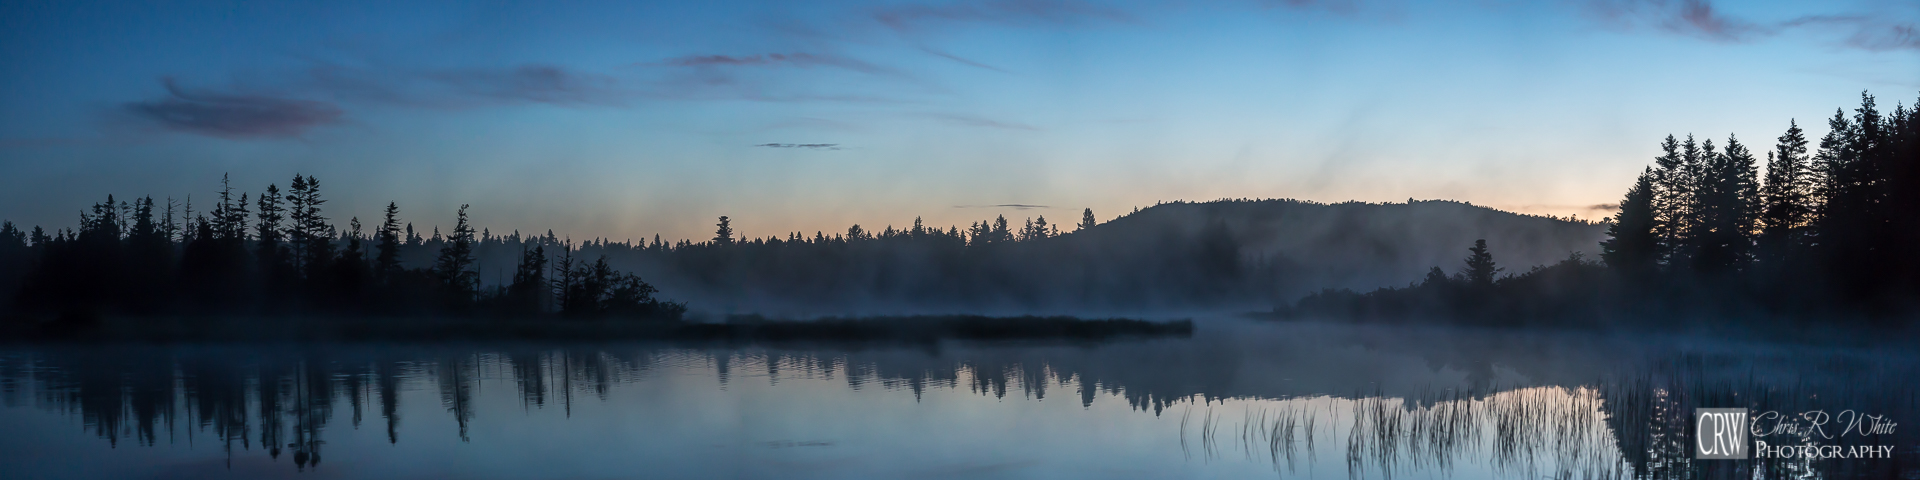 Every morning we shoved our kayaks off into mist, in search of wildlife and natural landscapes.   -Click Image for Larger View-